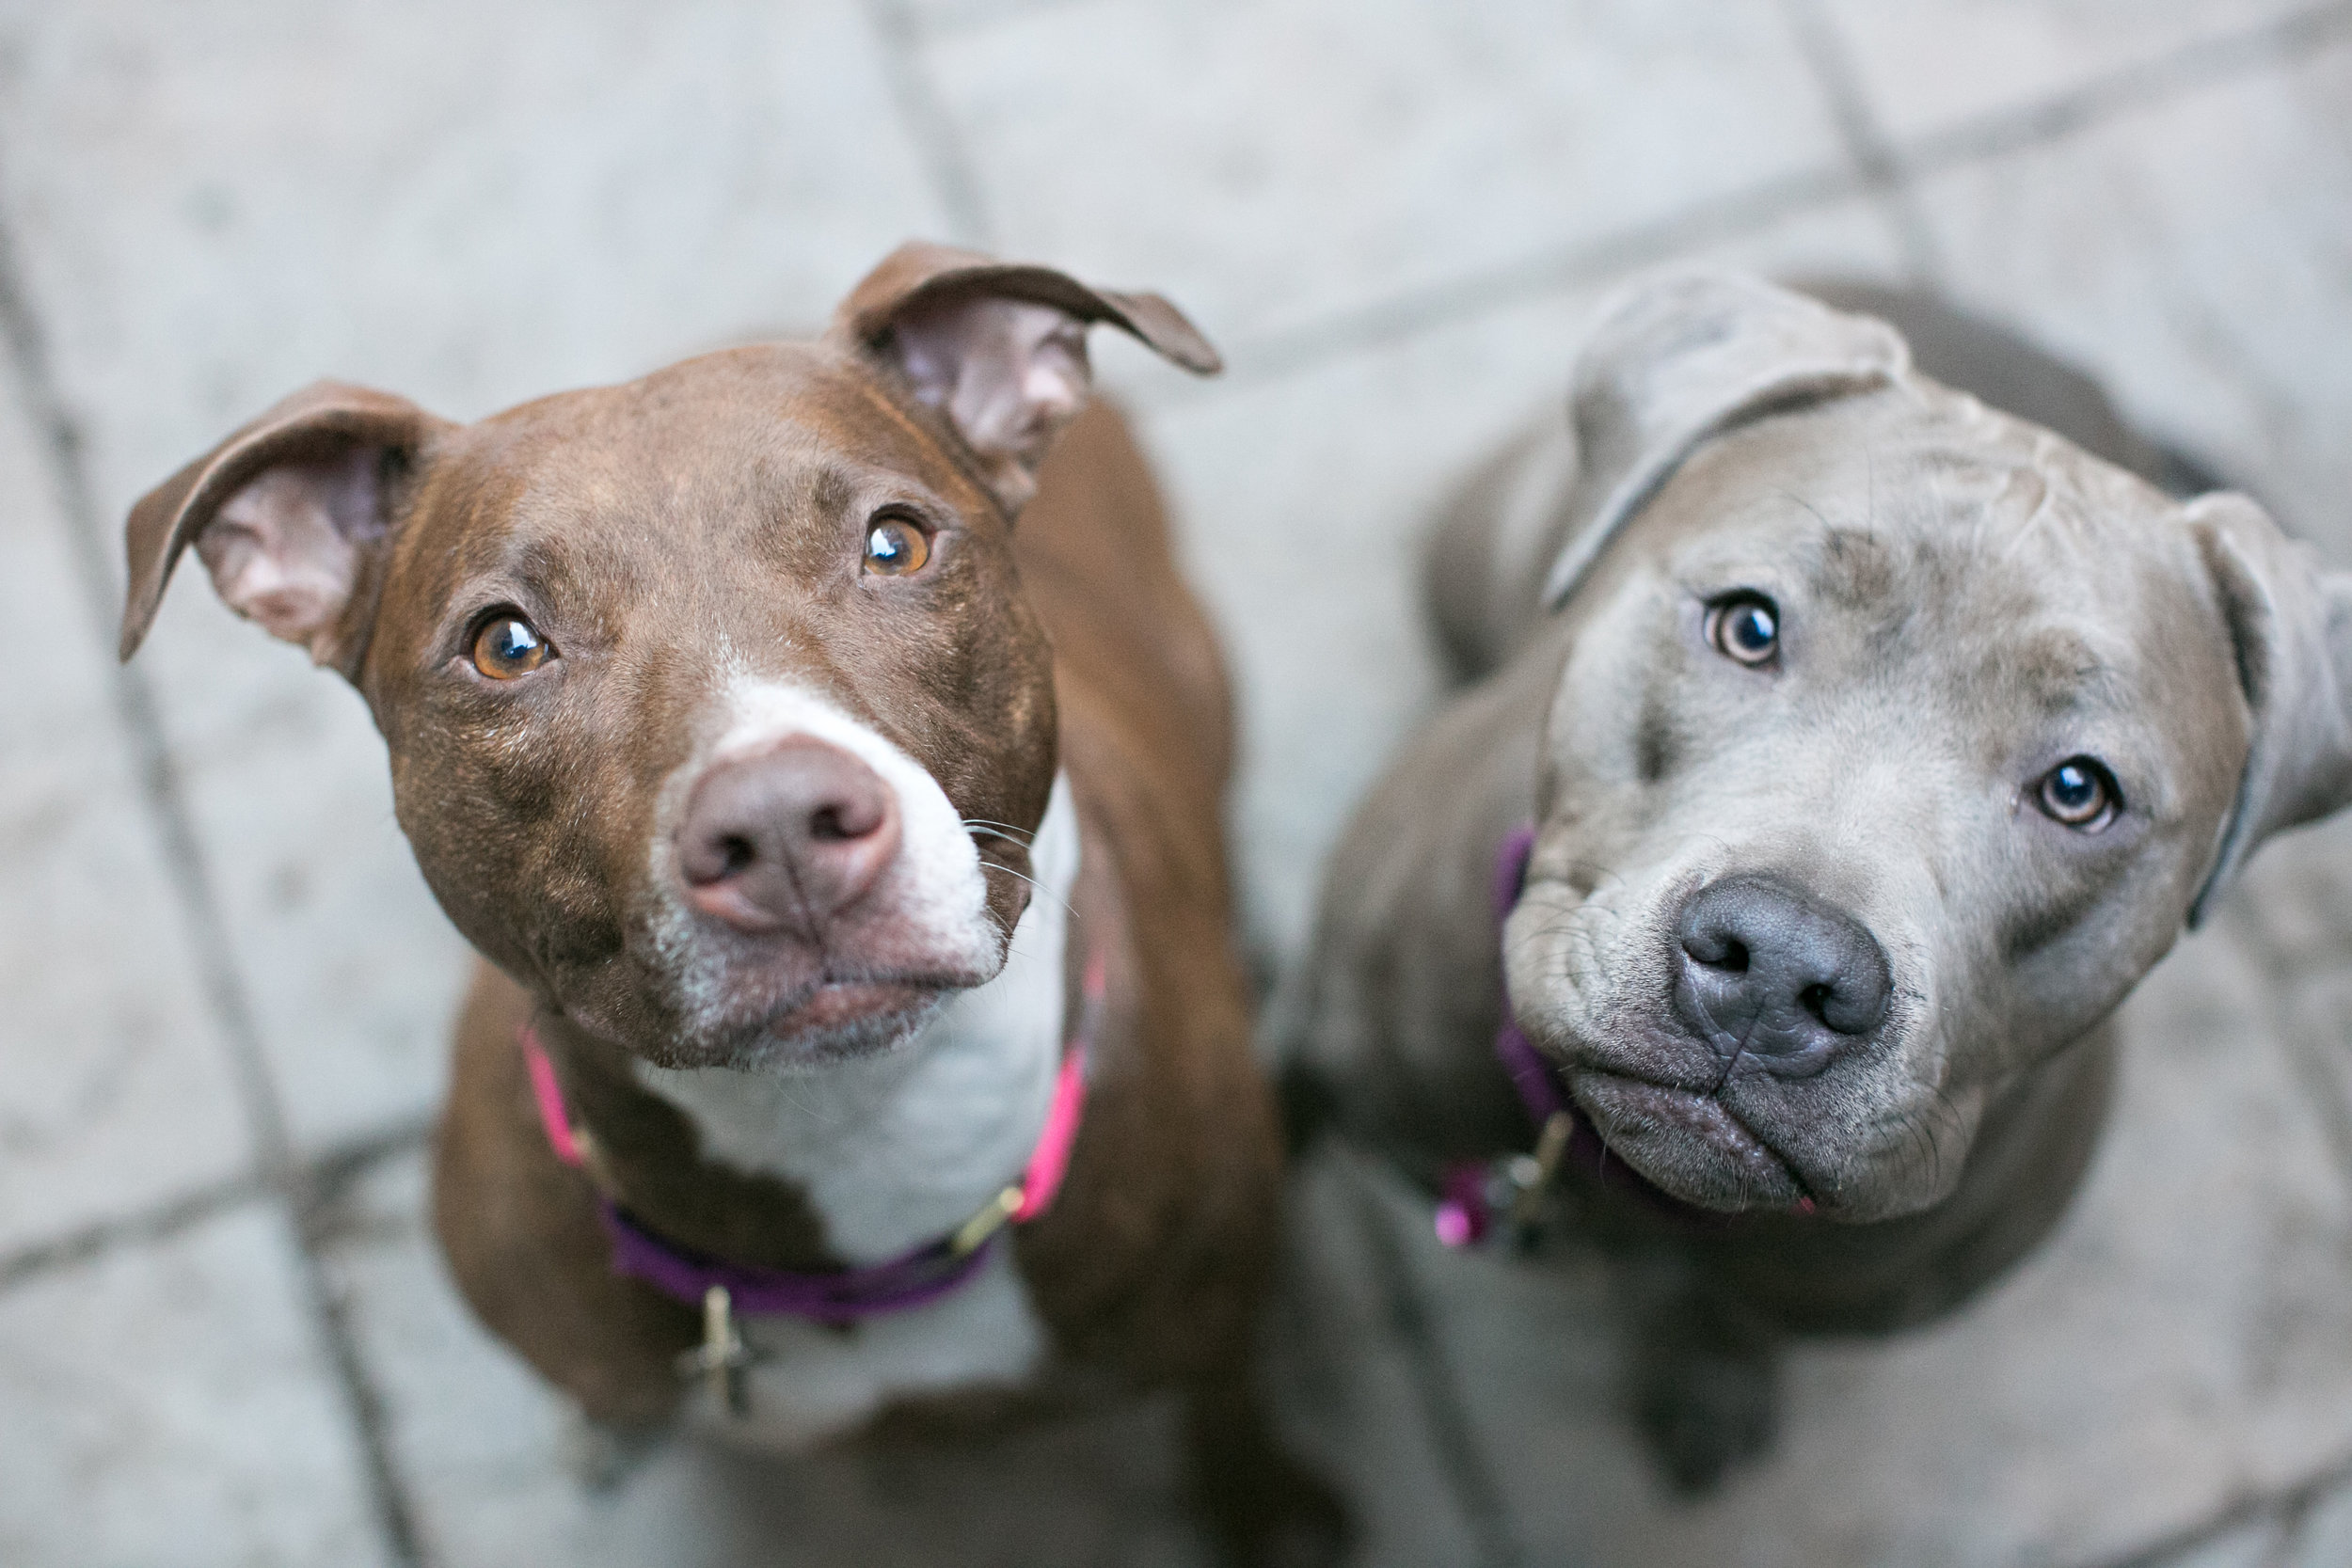 All Animal Porn pit bull people part 2: pit bulls are like porn — hello pigpen